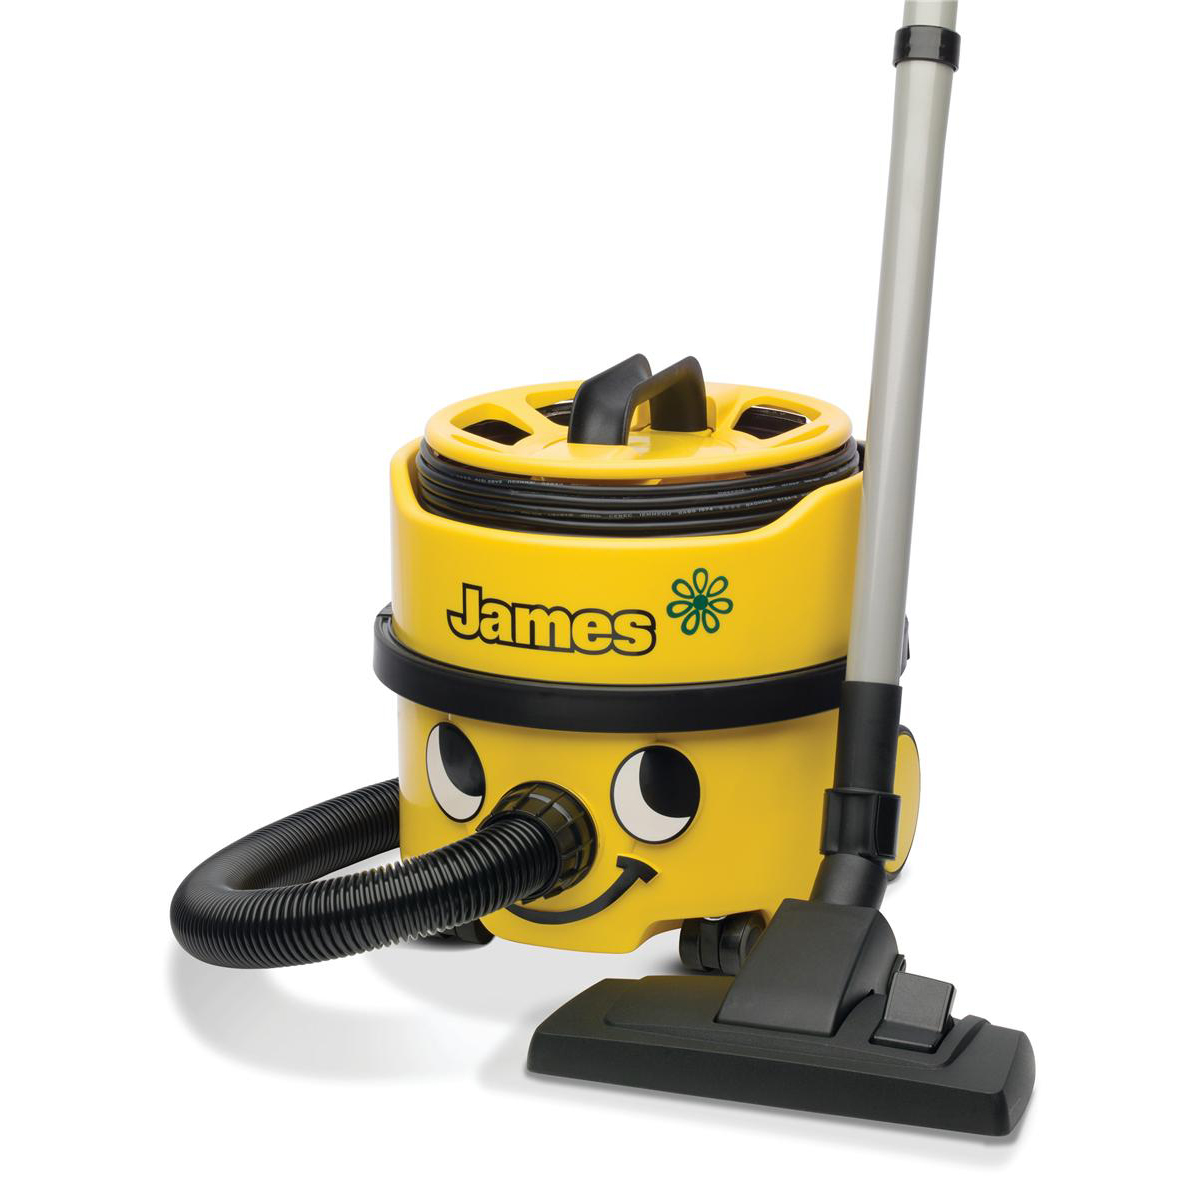 Numatic James Vacuum Cleaner 500-800W 8 Litre 7Kg Yellow Ref JVP180-11